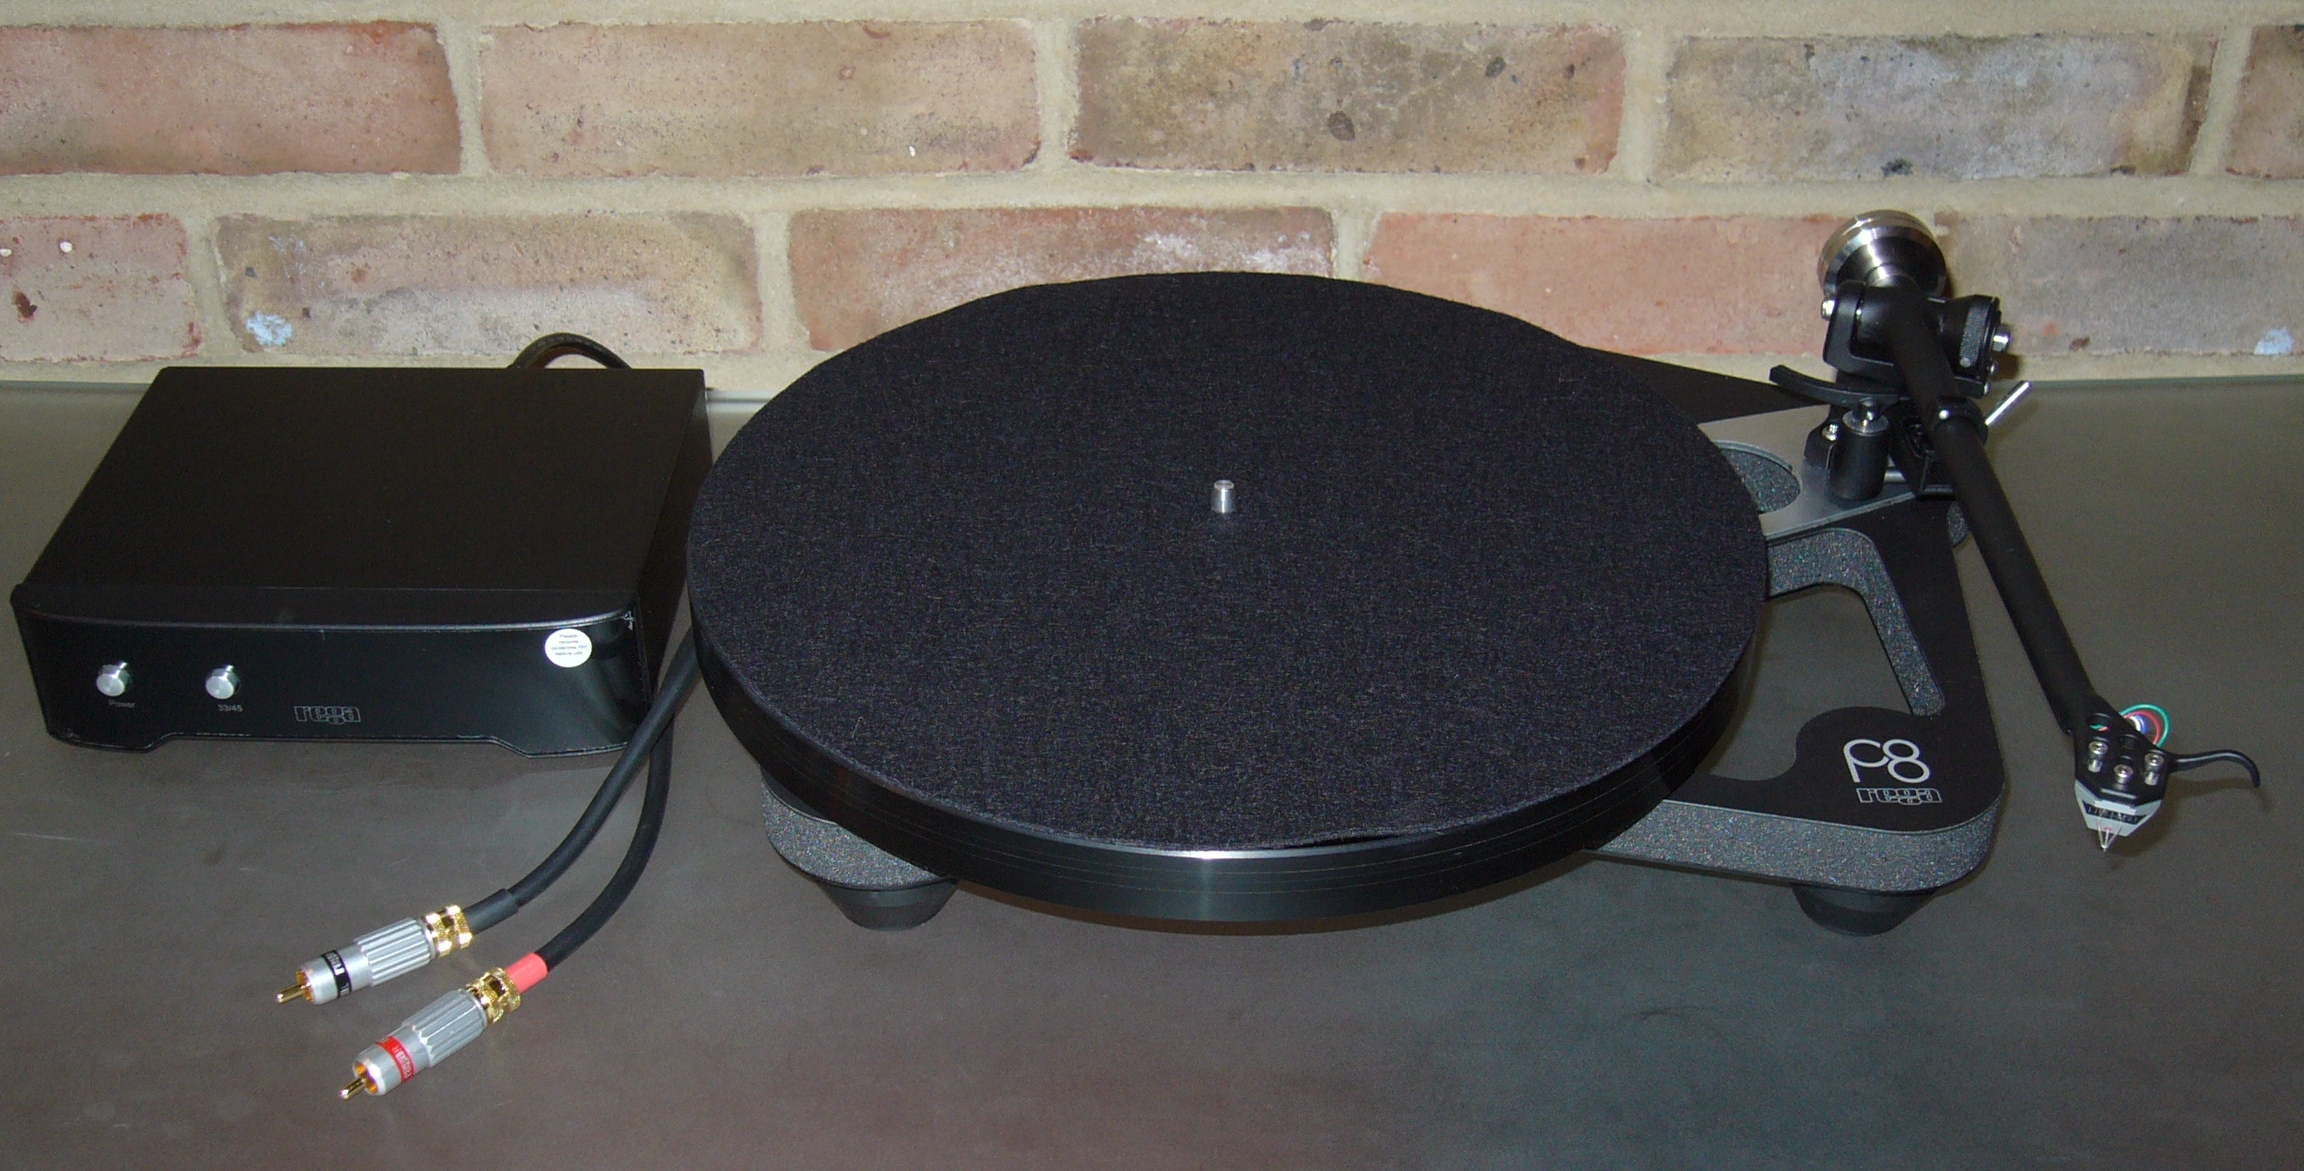 Planar 8 with Neo power supply.